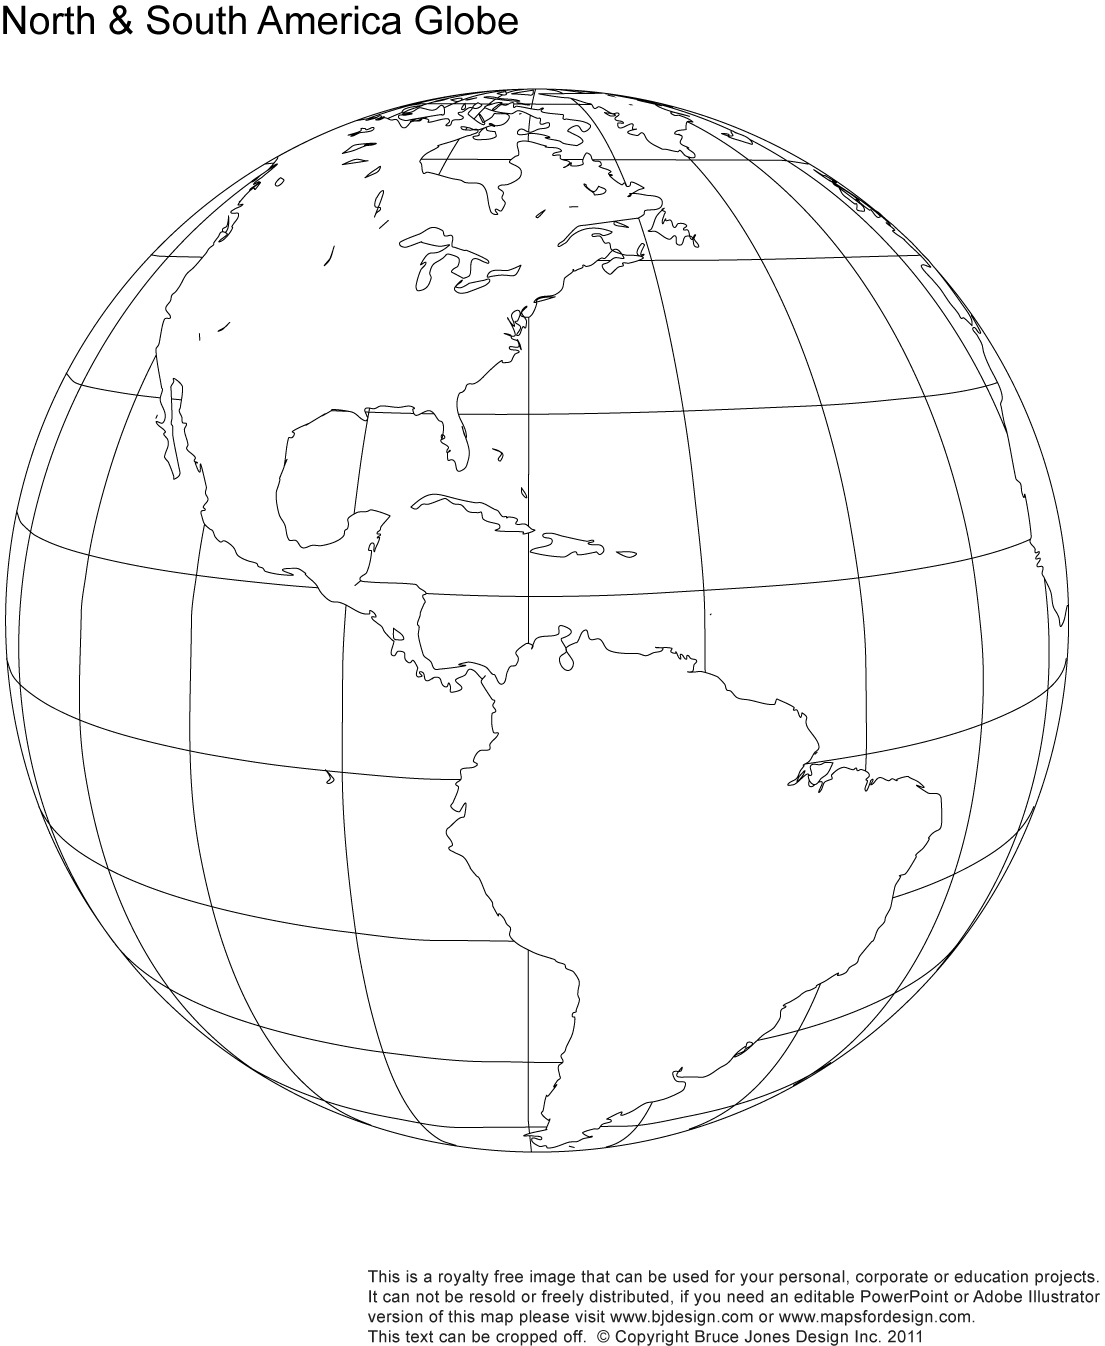 Worksheet. Printable Blank World Globe Earth Maps  Royalty Free jpg